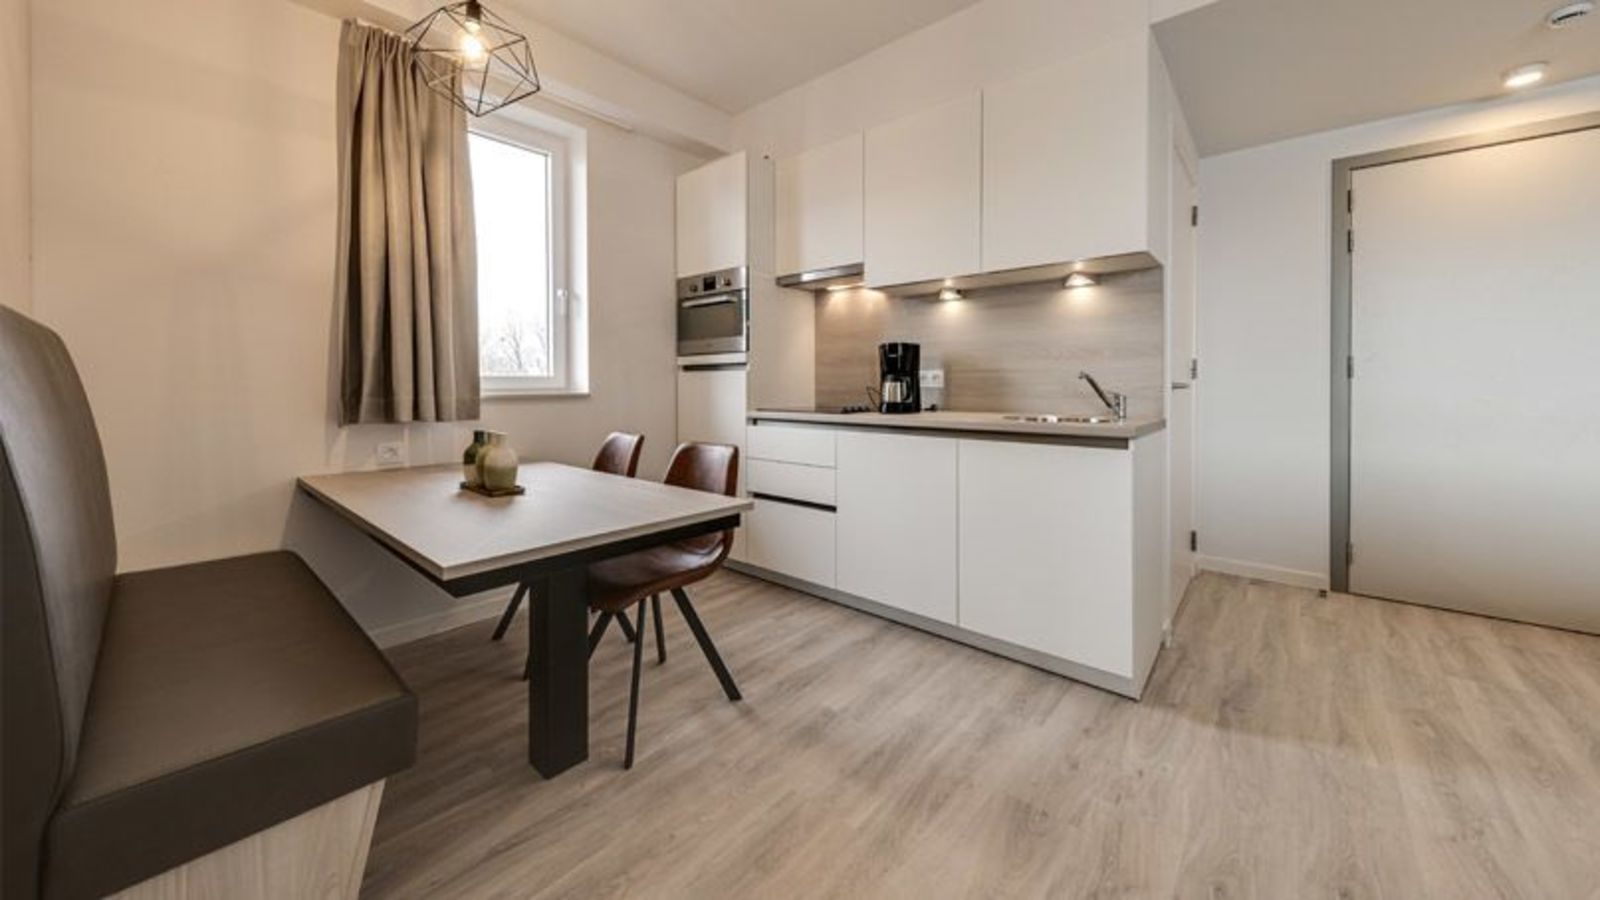 New Holiday Suite for 4 people with 2 double beds